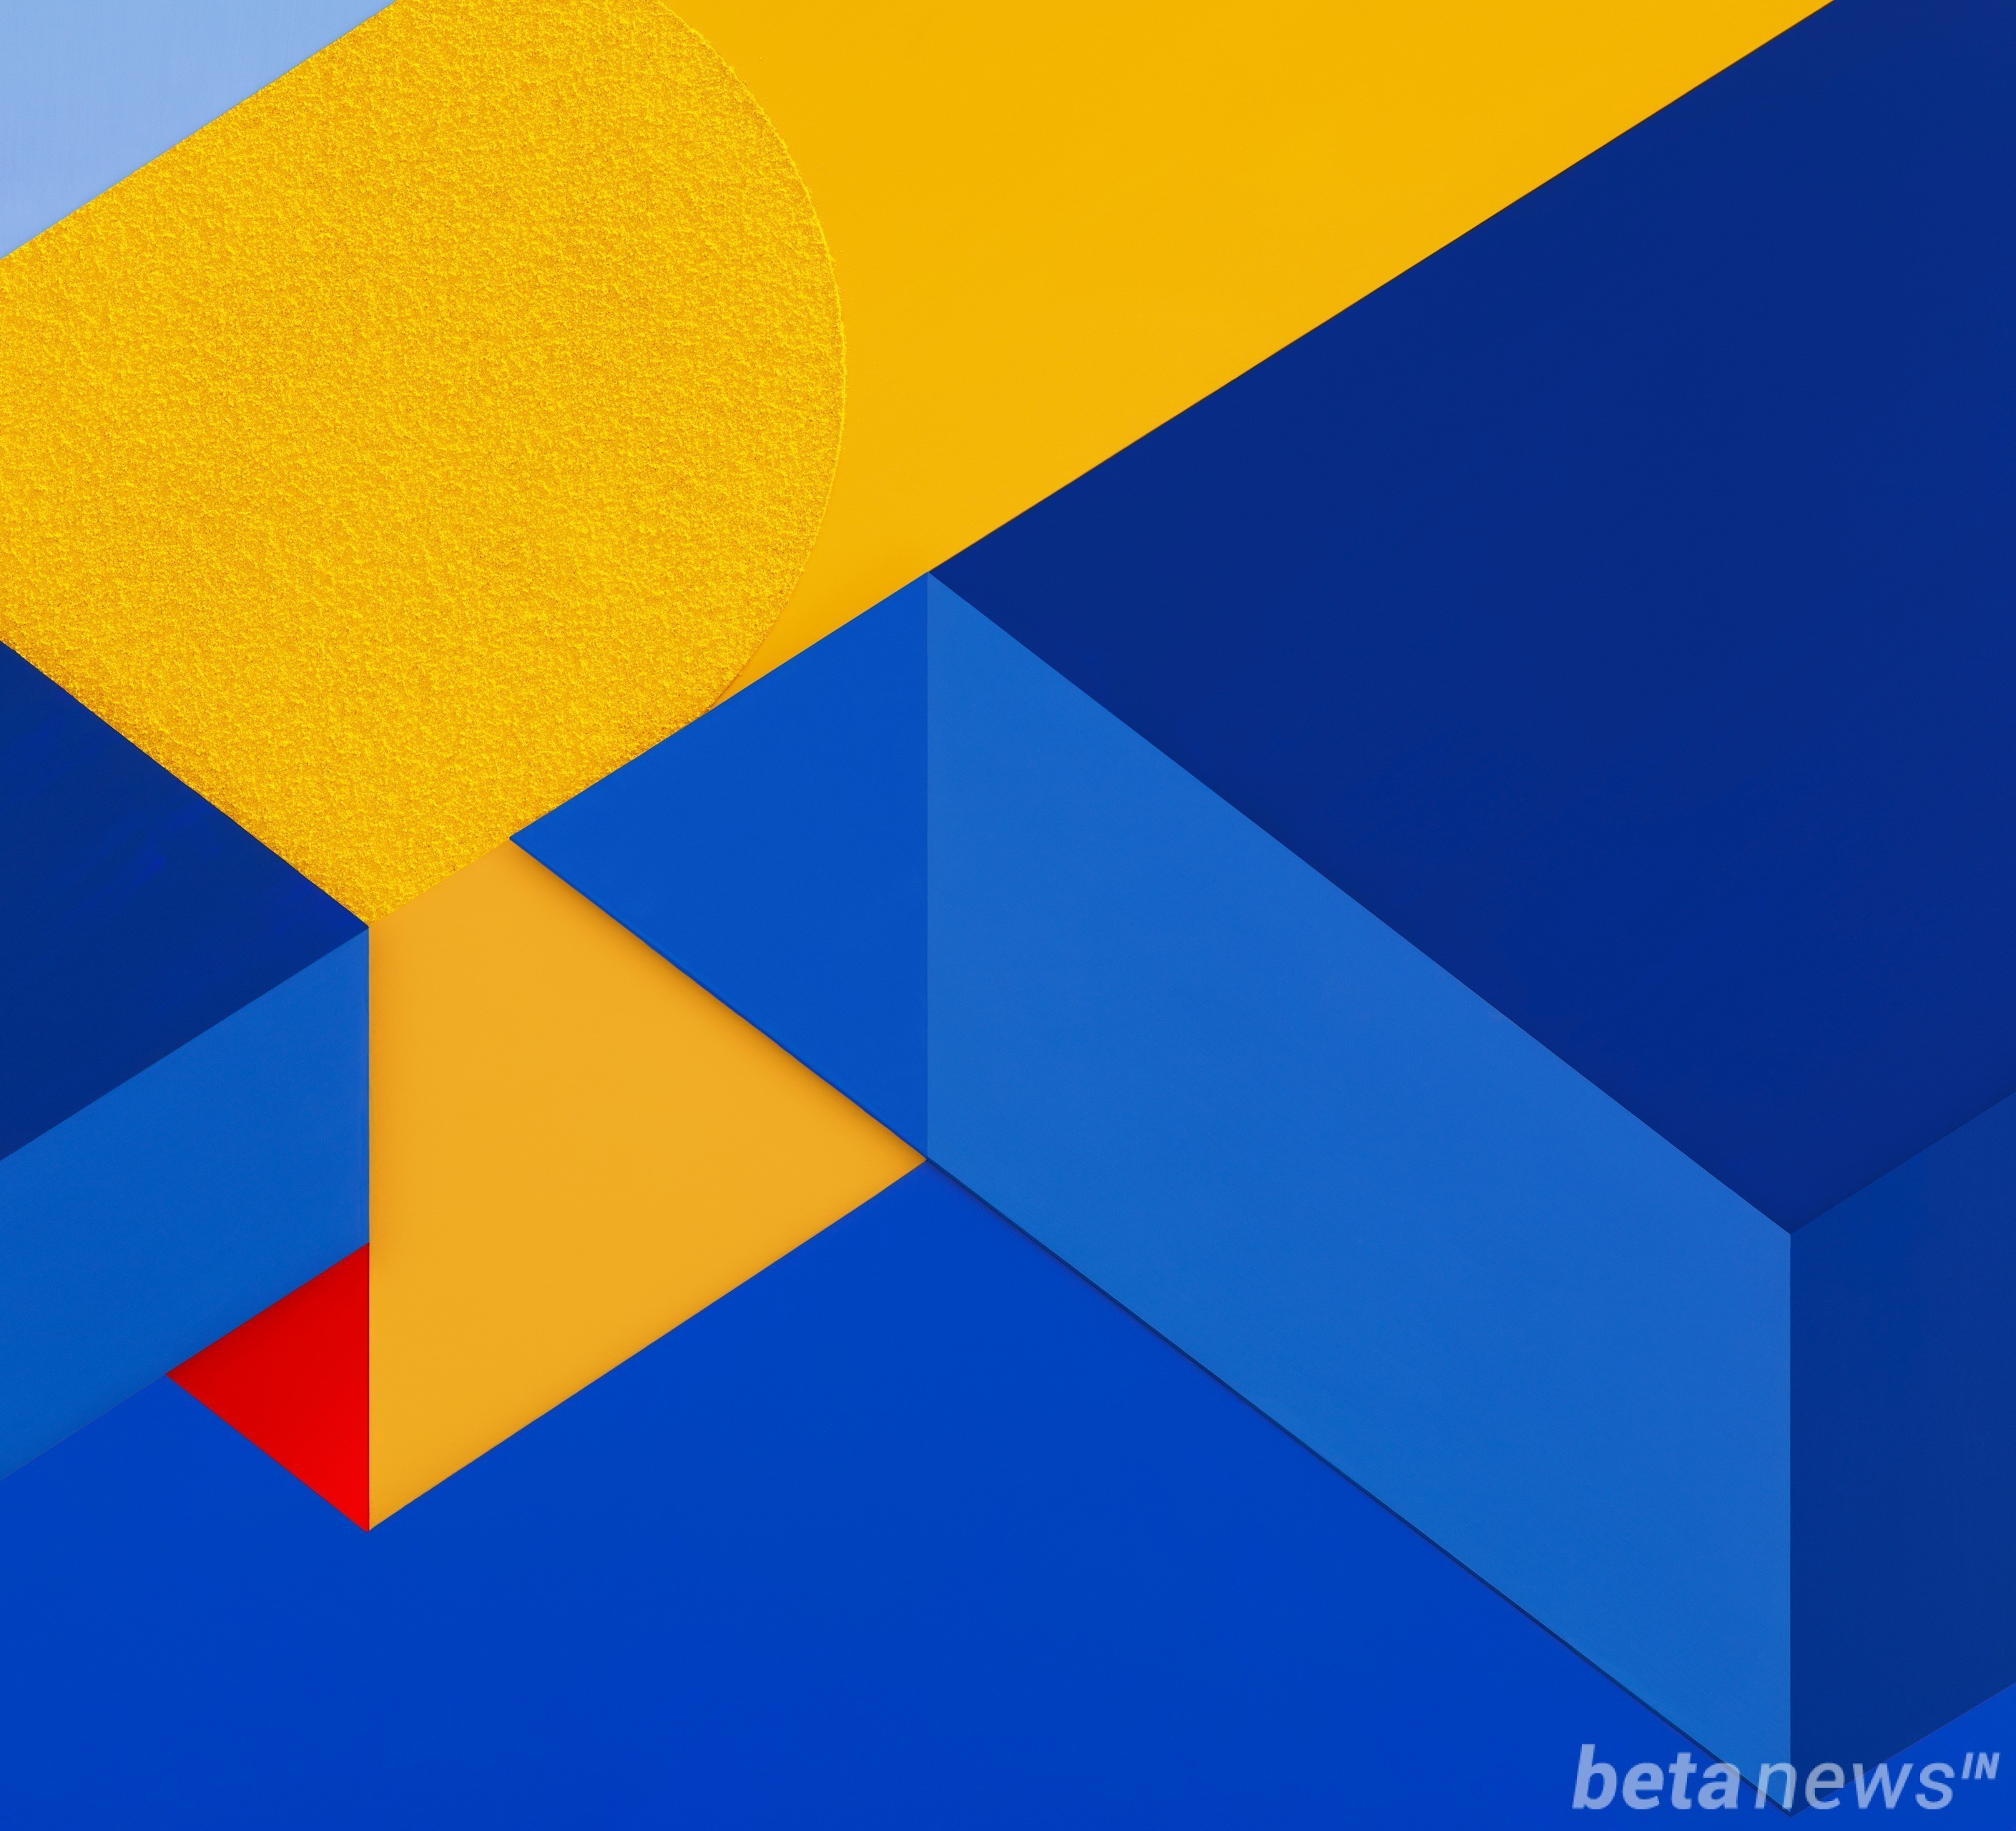 Android 6.0 Marshmallow Stock Wallpapers (betanews.in) 2819x2560